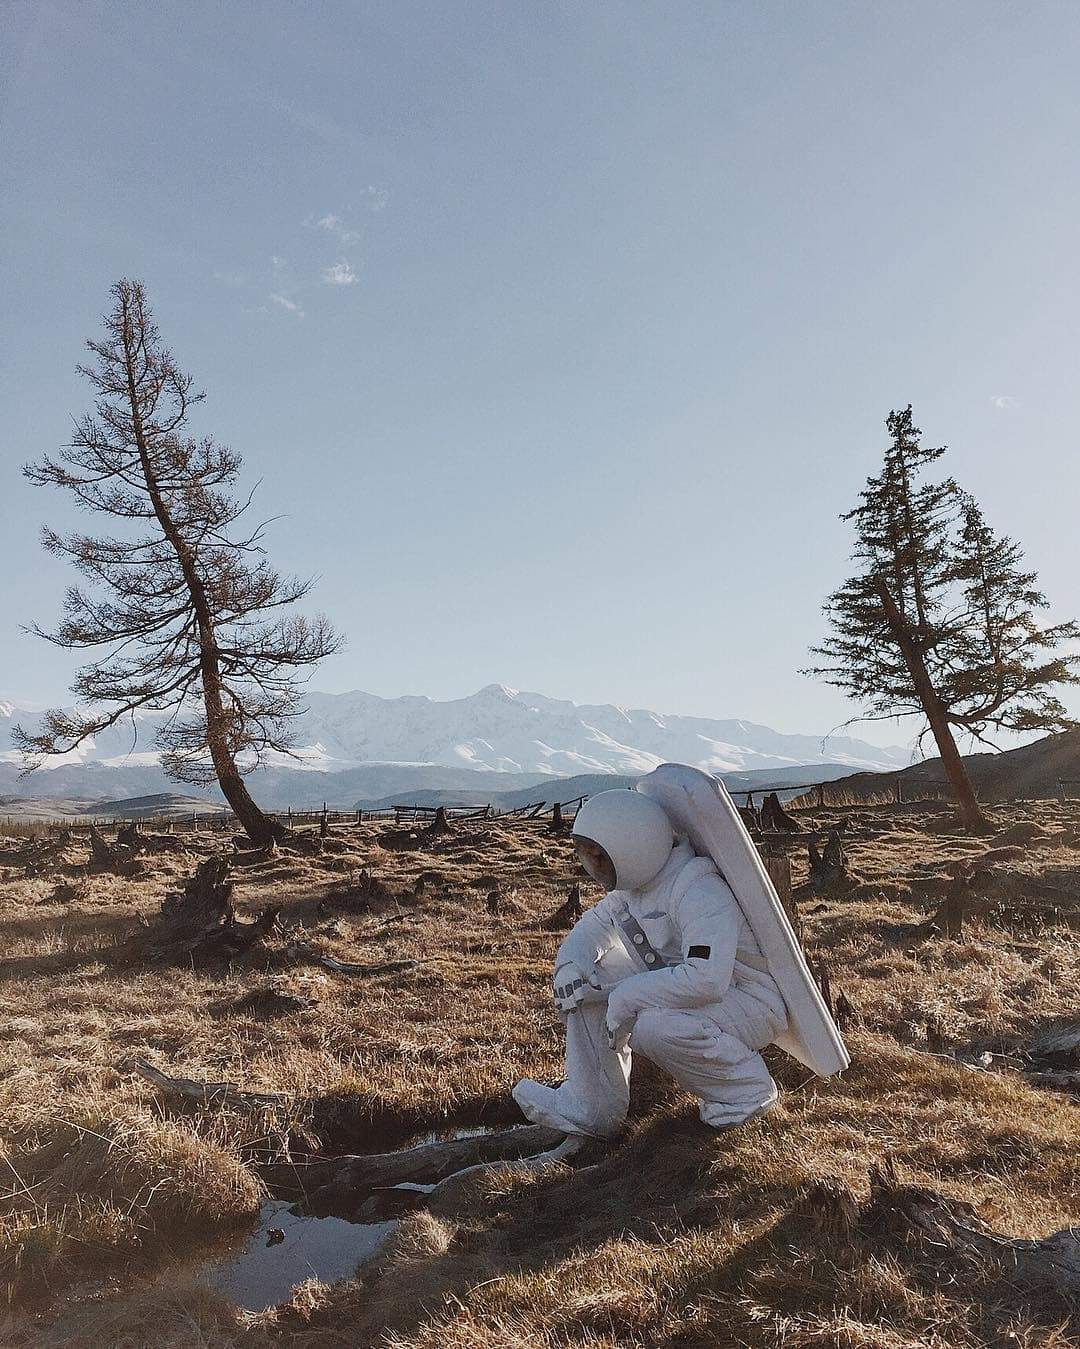 Russian Photographer Brings Space Down To Earth While Raise Awareness About The Environment -space, photographer, photo-project, landscapes, gohome